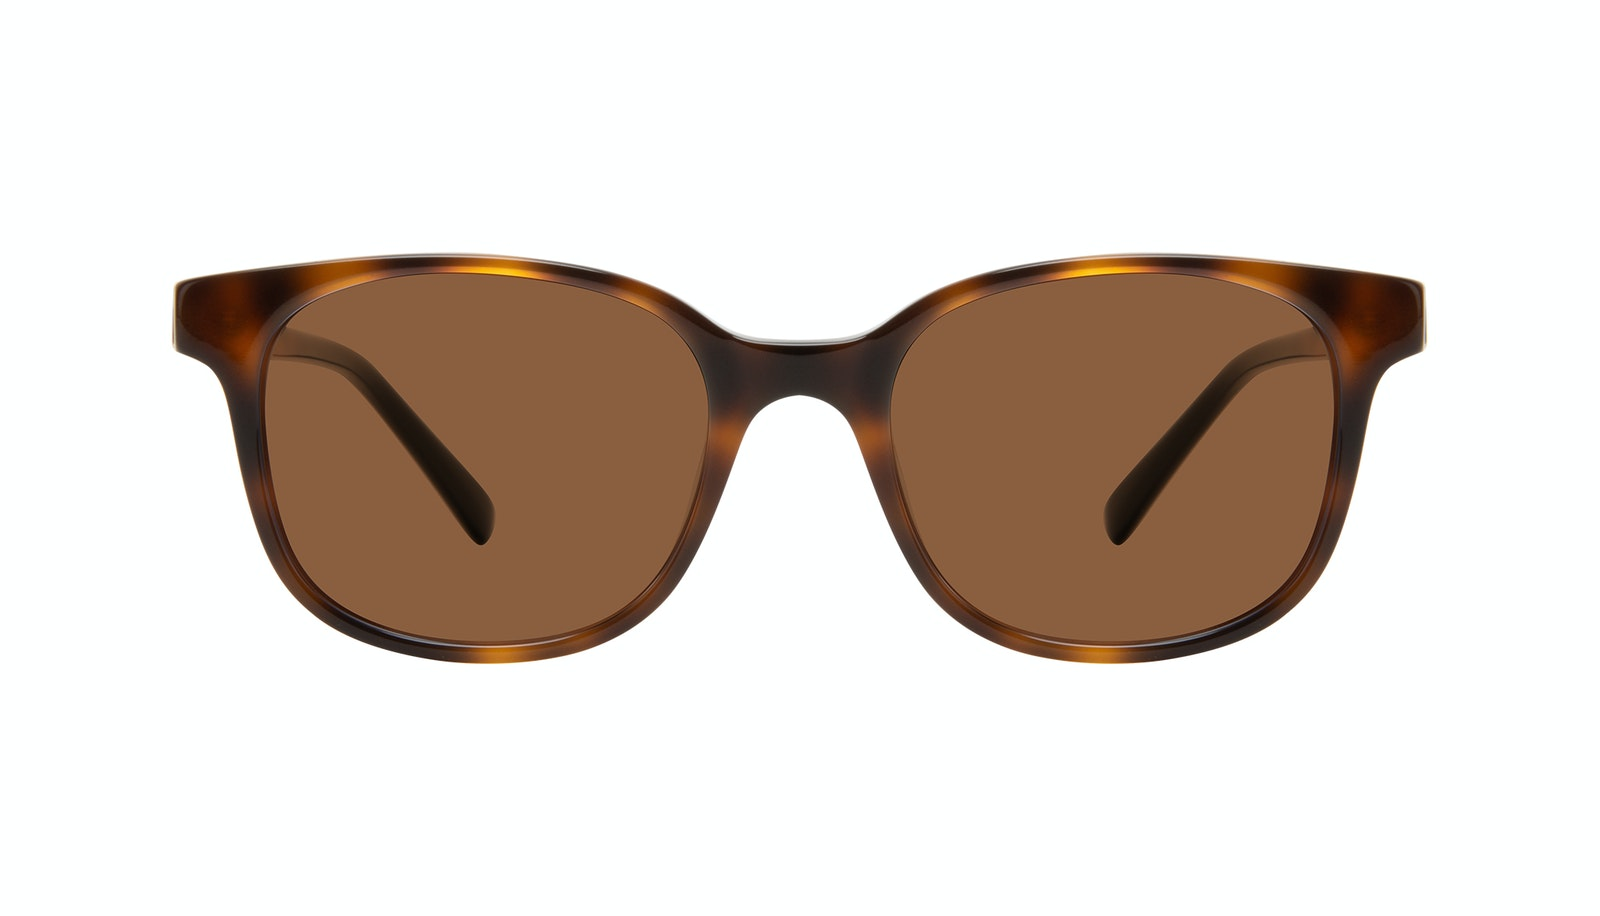 Affordable Fashion Glasses Square Sunglasses Women Unique Tortoise